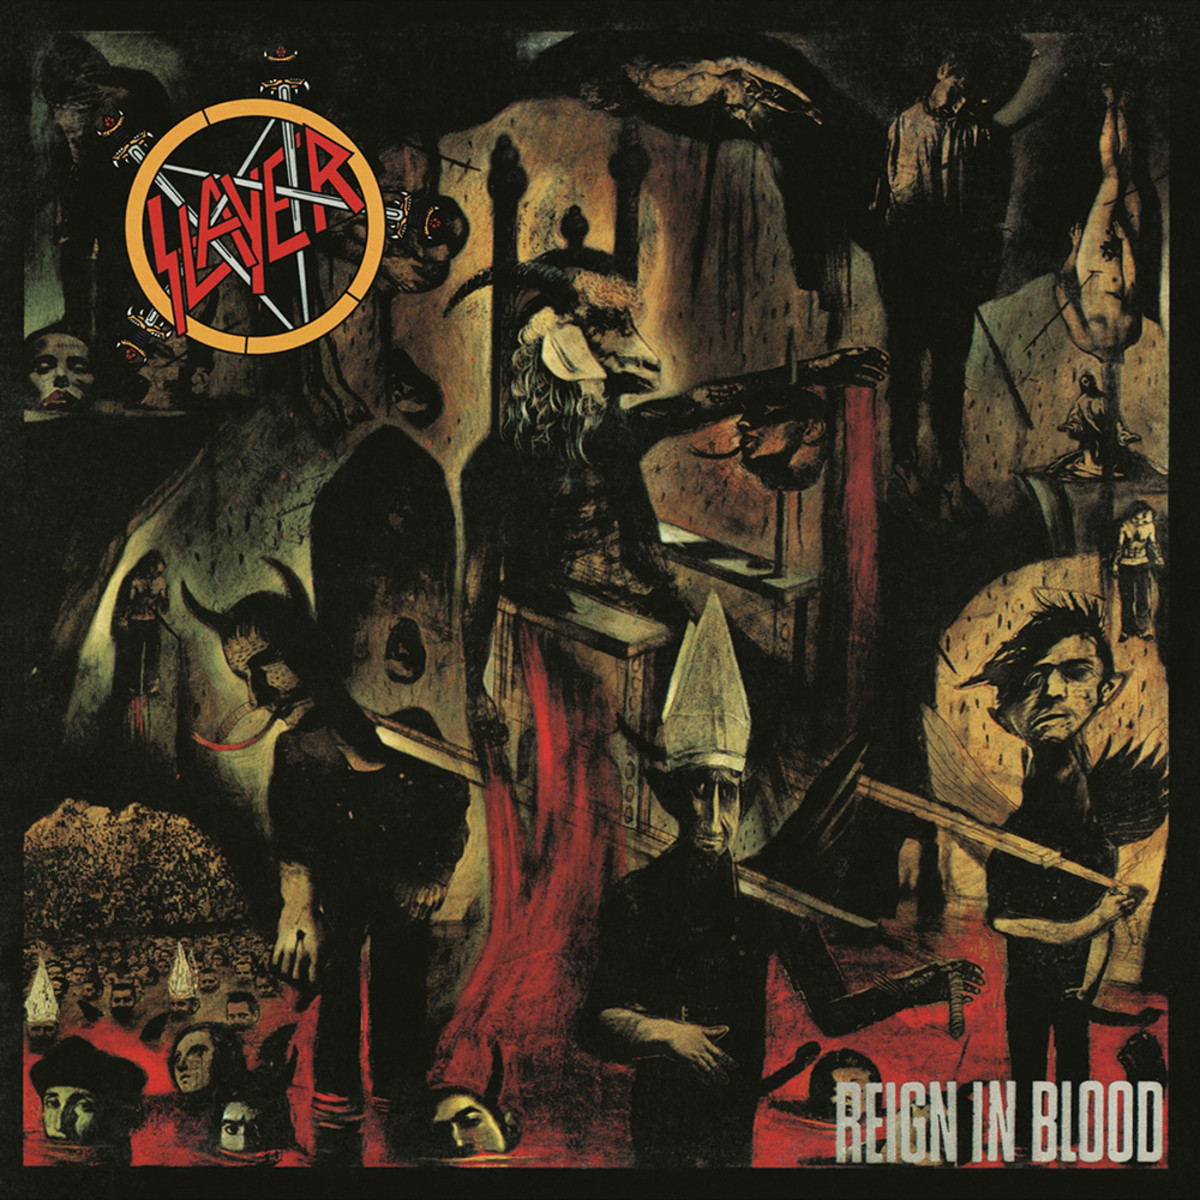 A Review of Reign in Blood the best album of American thrash metal band Slayer